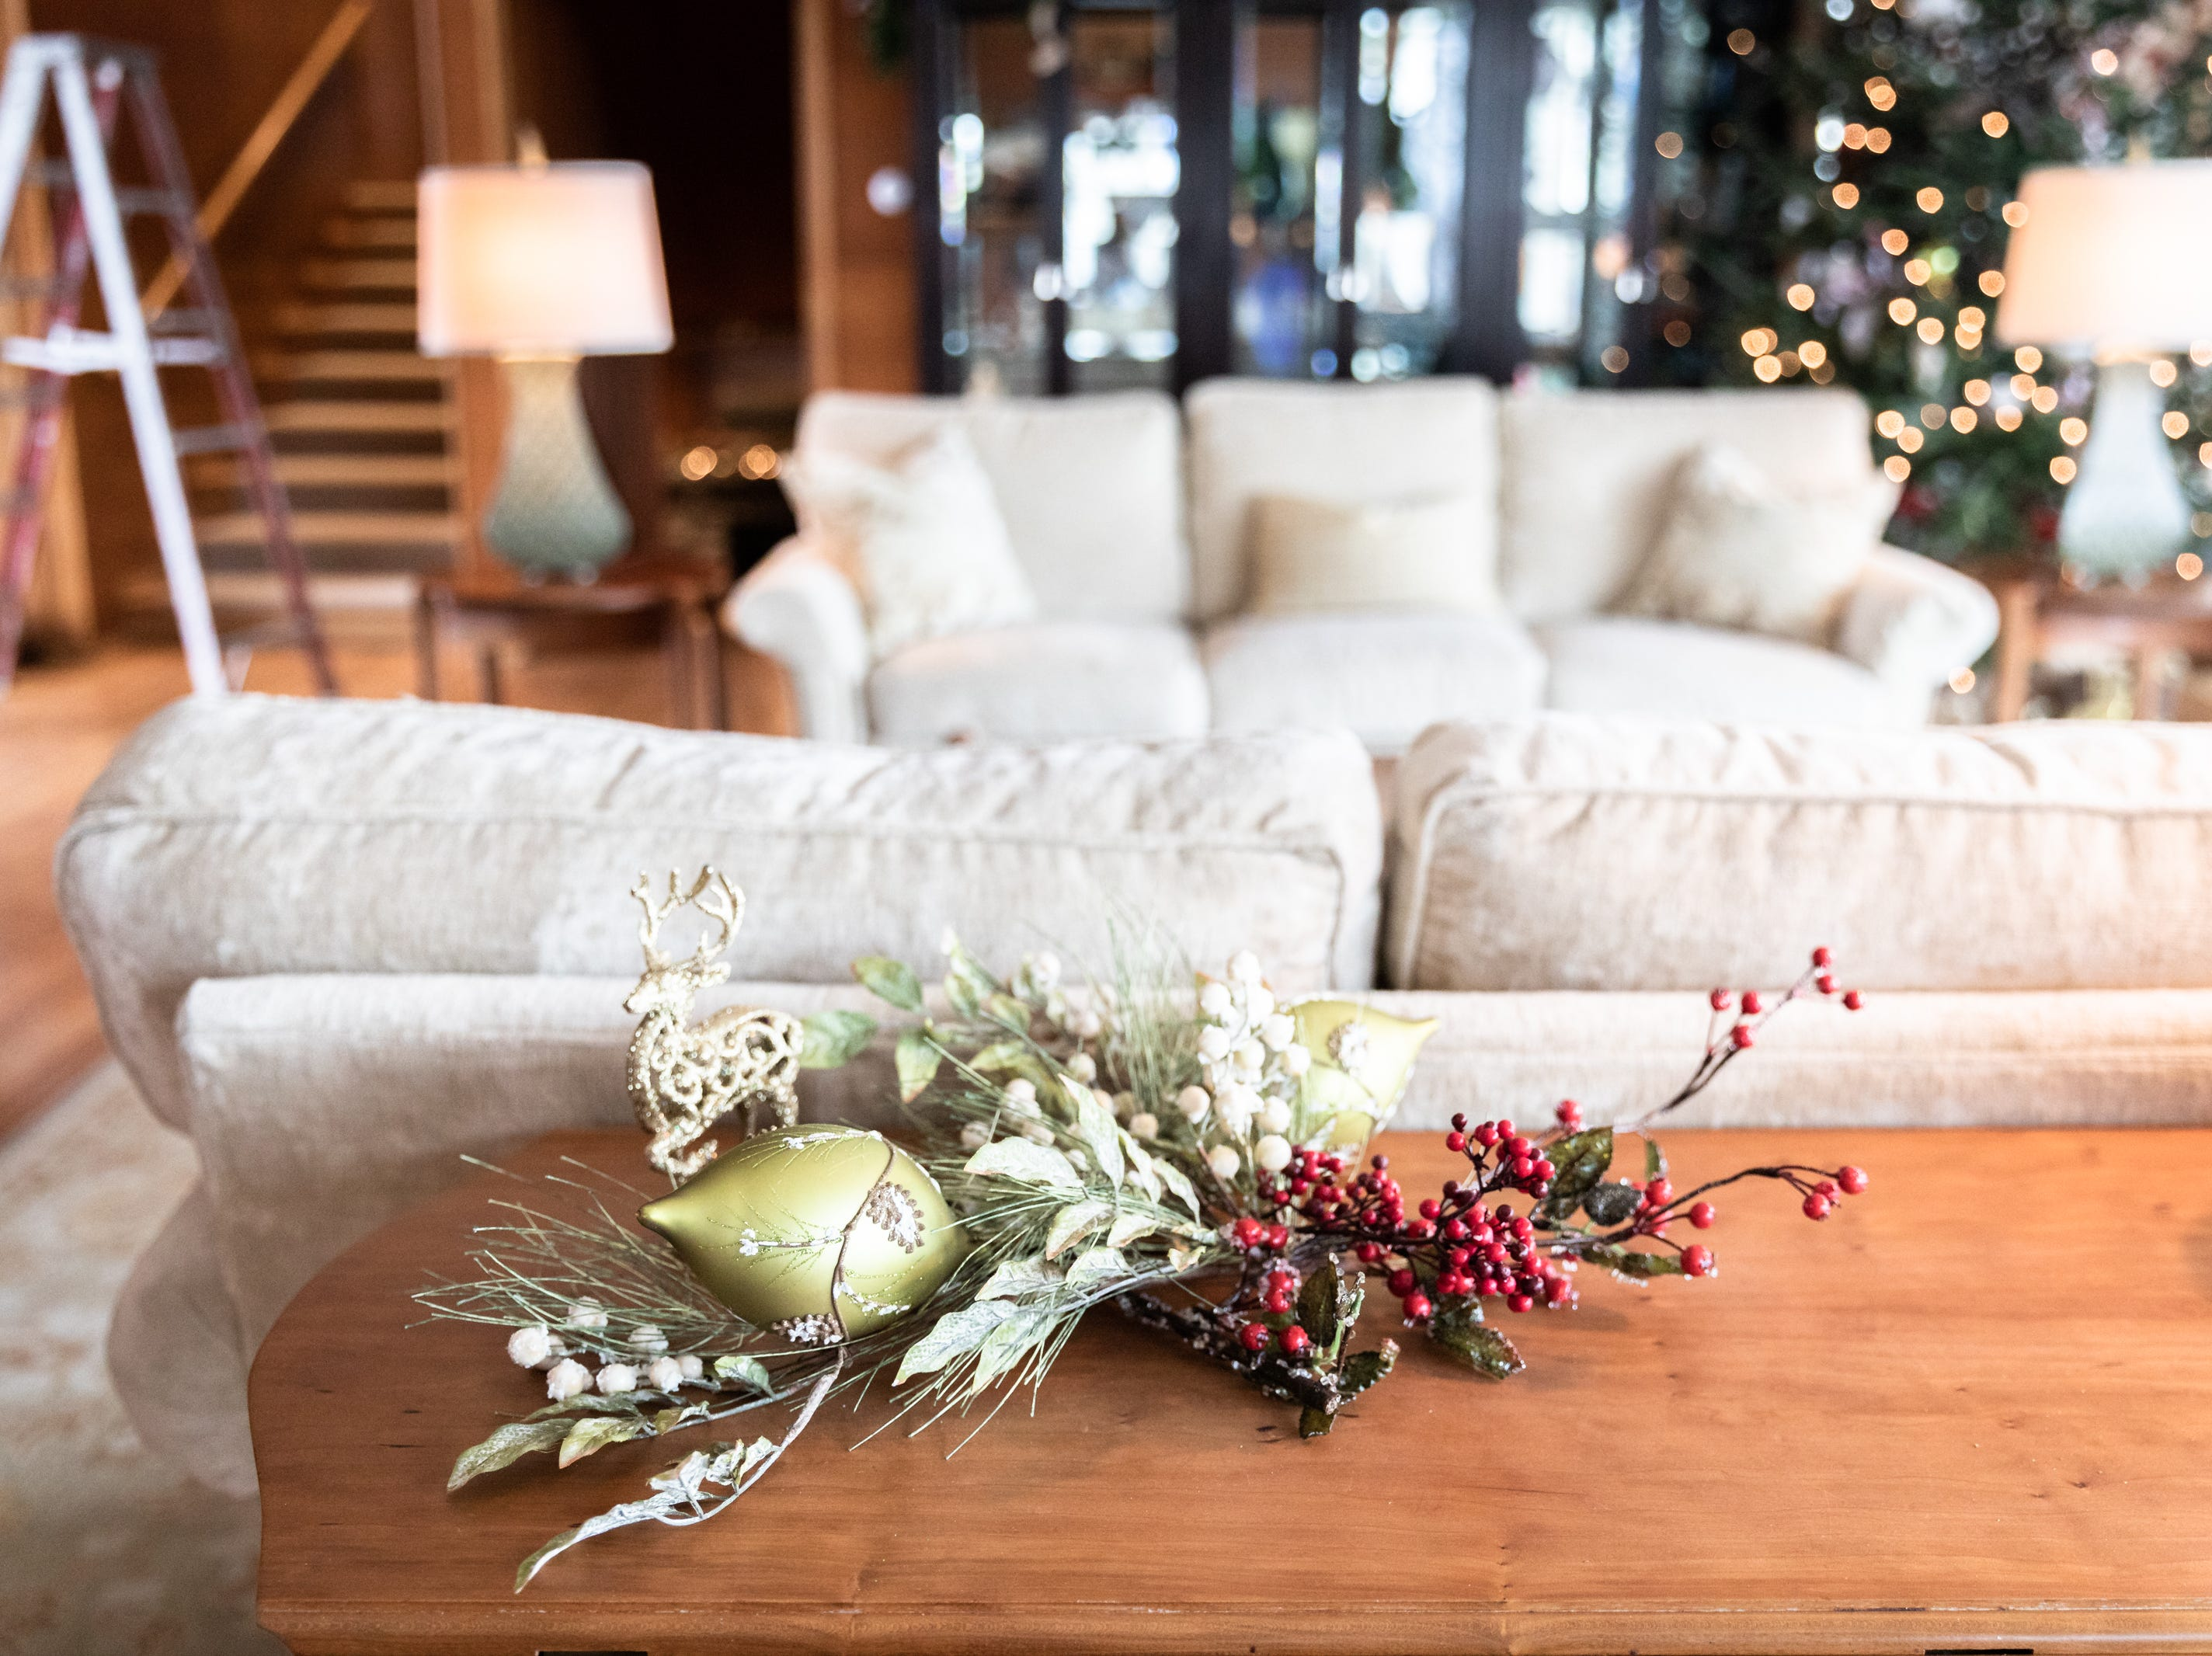 A decorative holiday piece in the living room of the Governor's Western Residence on Patton Mountain Road in Asheville.